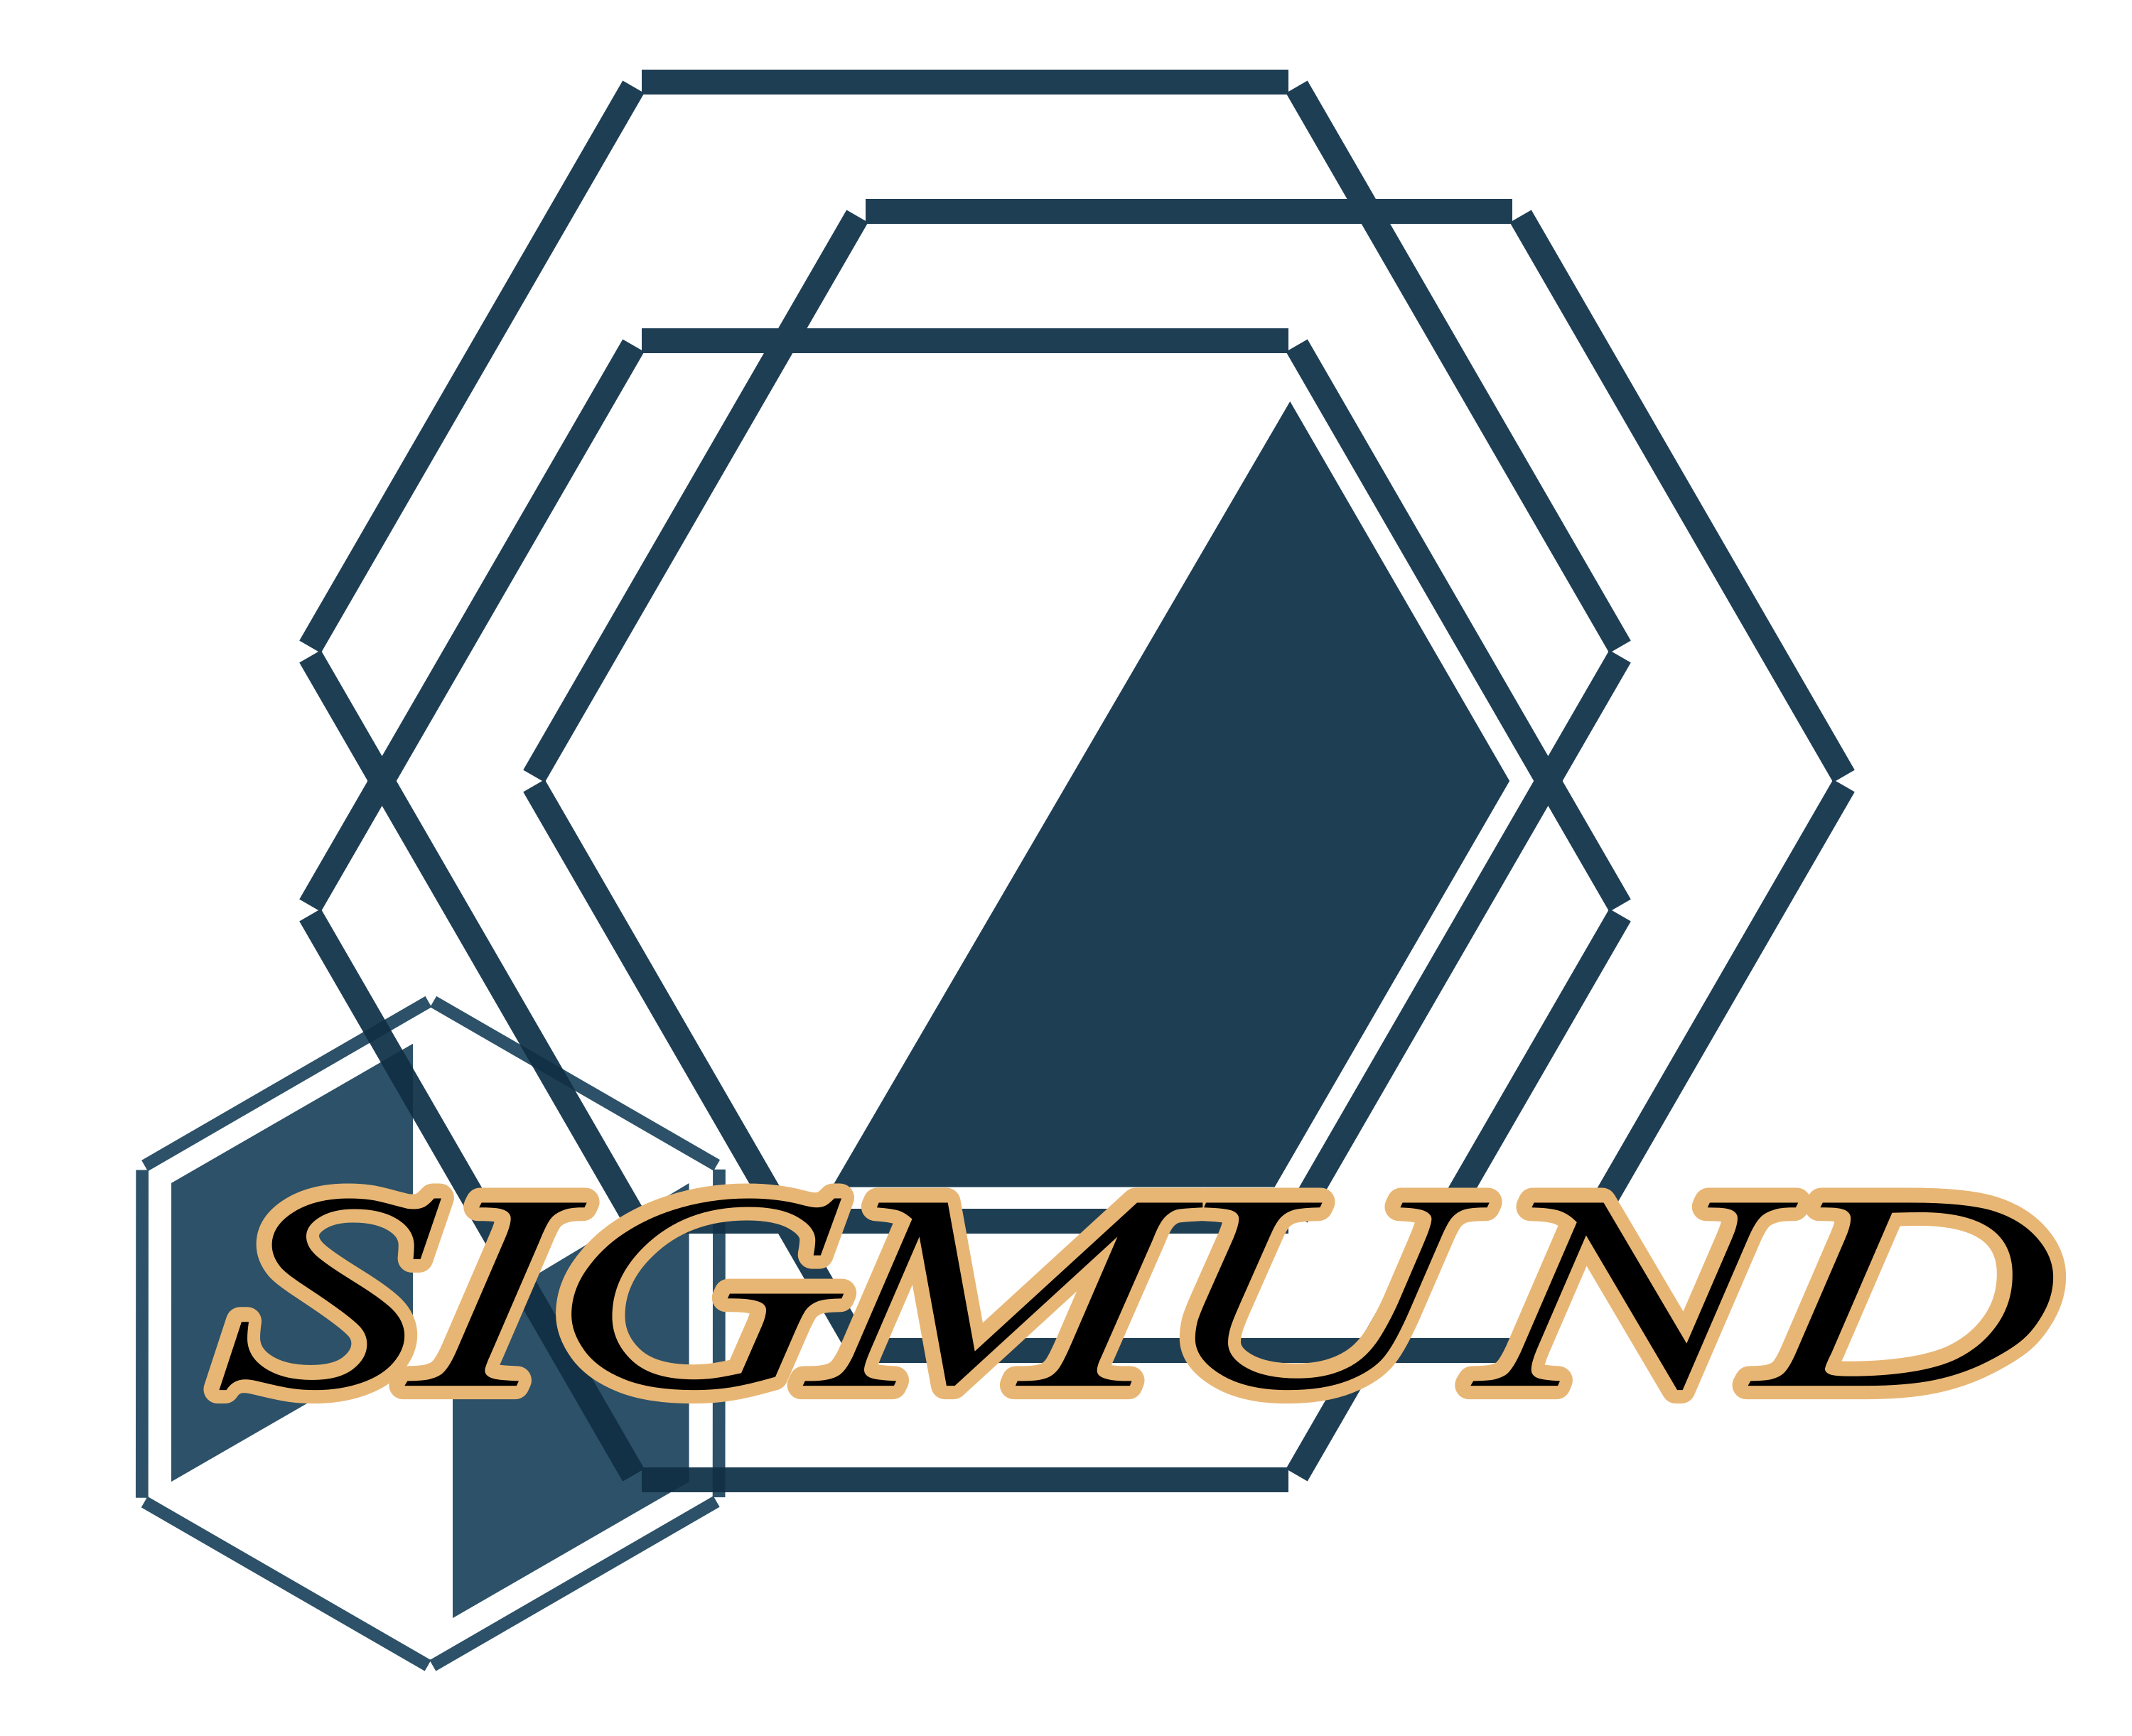 To The Moon - Sigmund Corp Logo (Building) v2